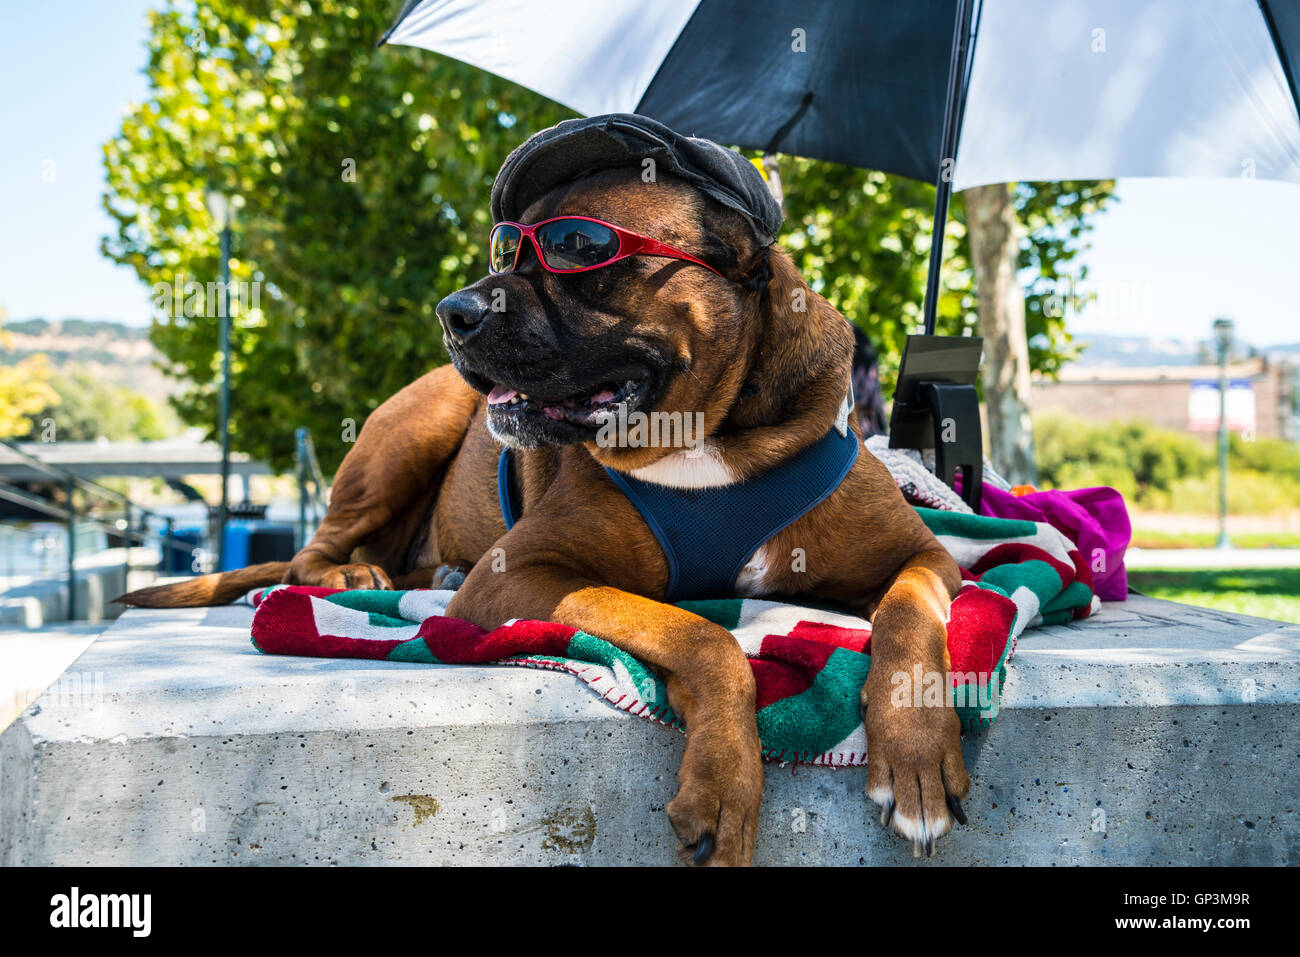 Large dog with hat and sunglasses relaxing in Napa California.....humorous - Stock Image